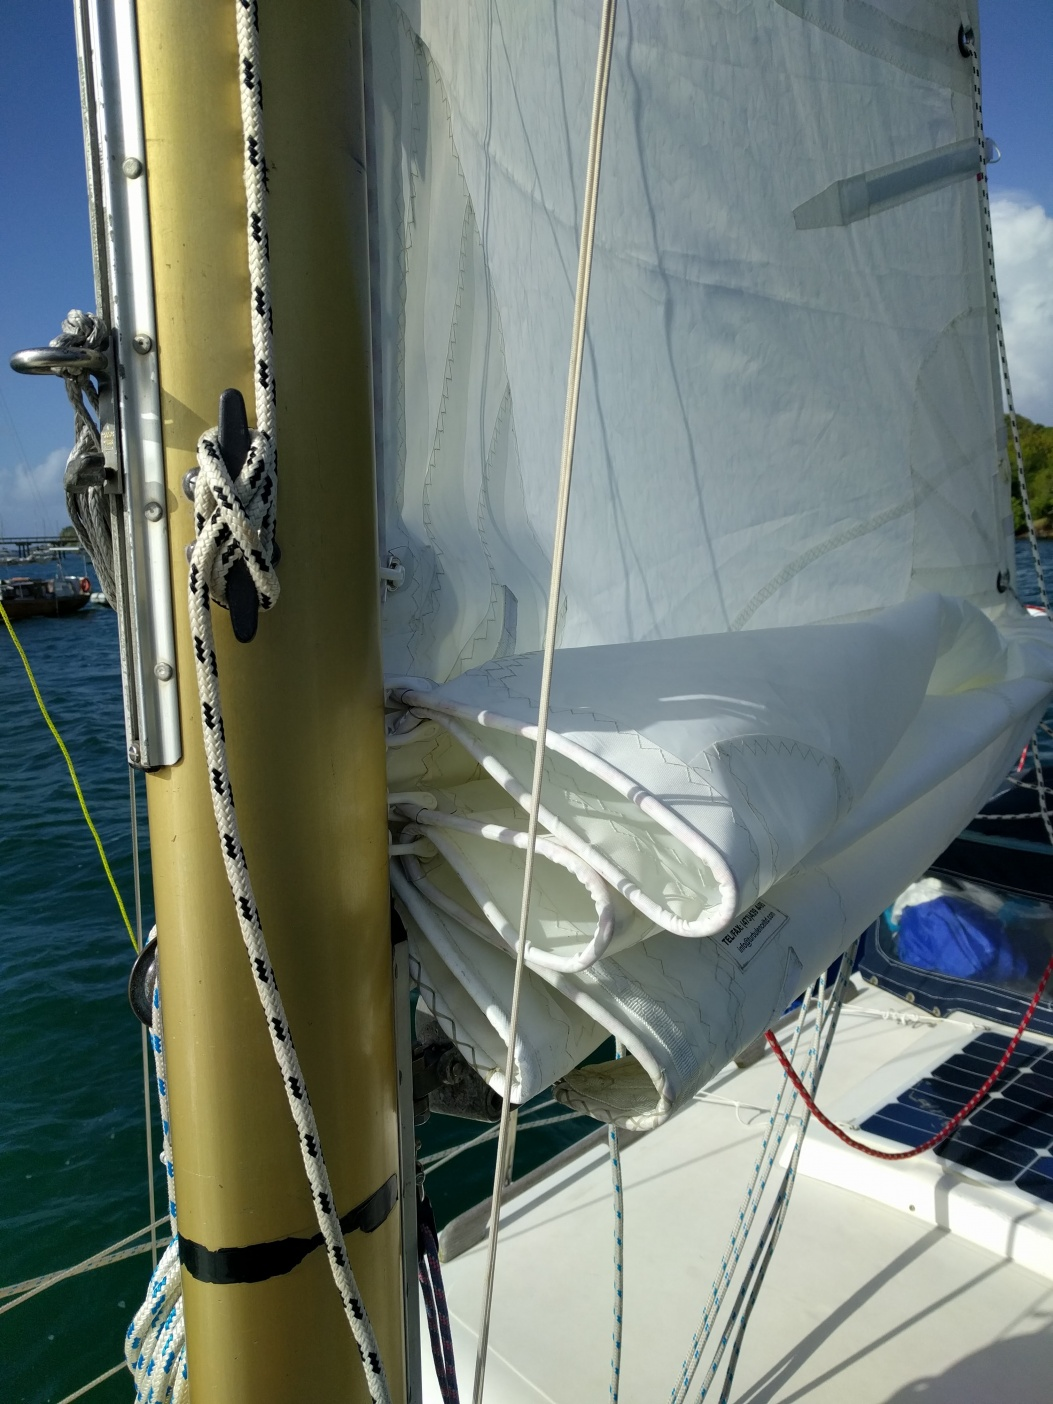 Dumb questions about new sail - Cruisers & Sailing Forums